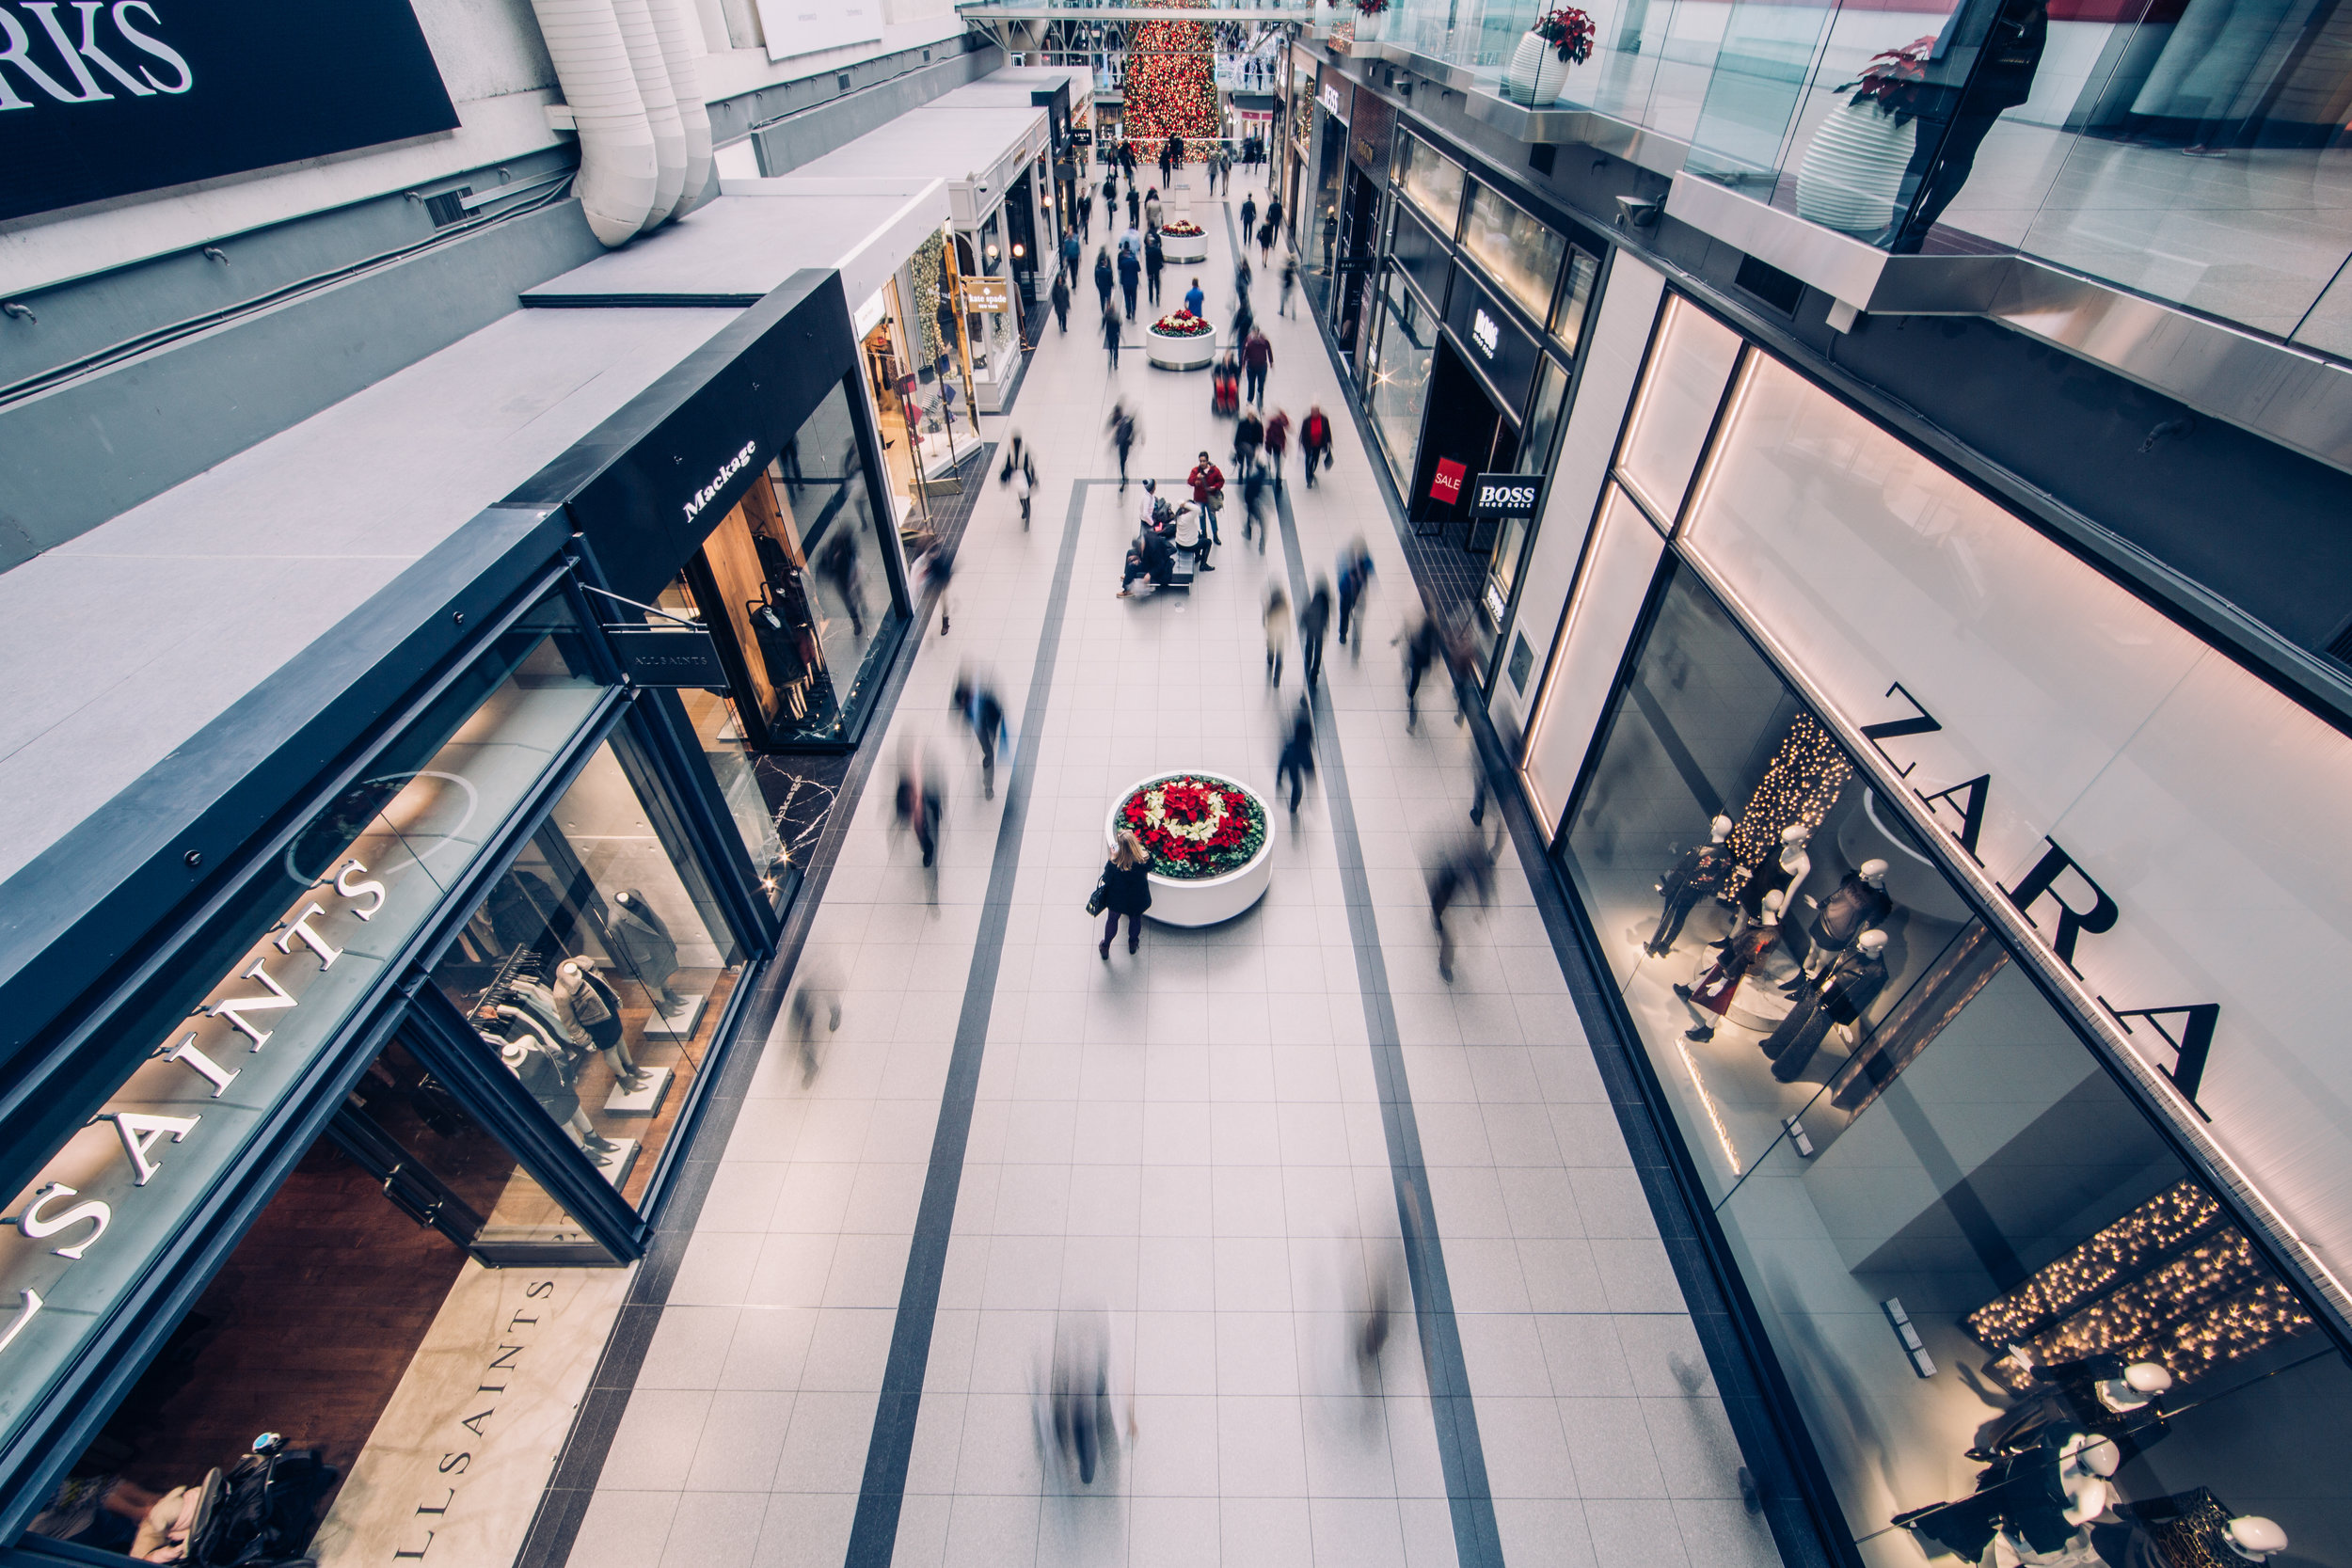 Life, libery and shopping